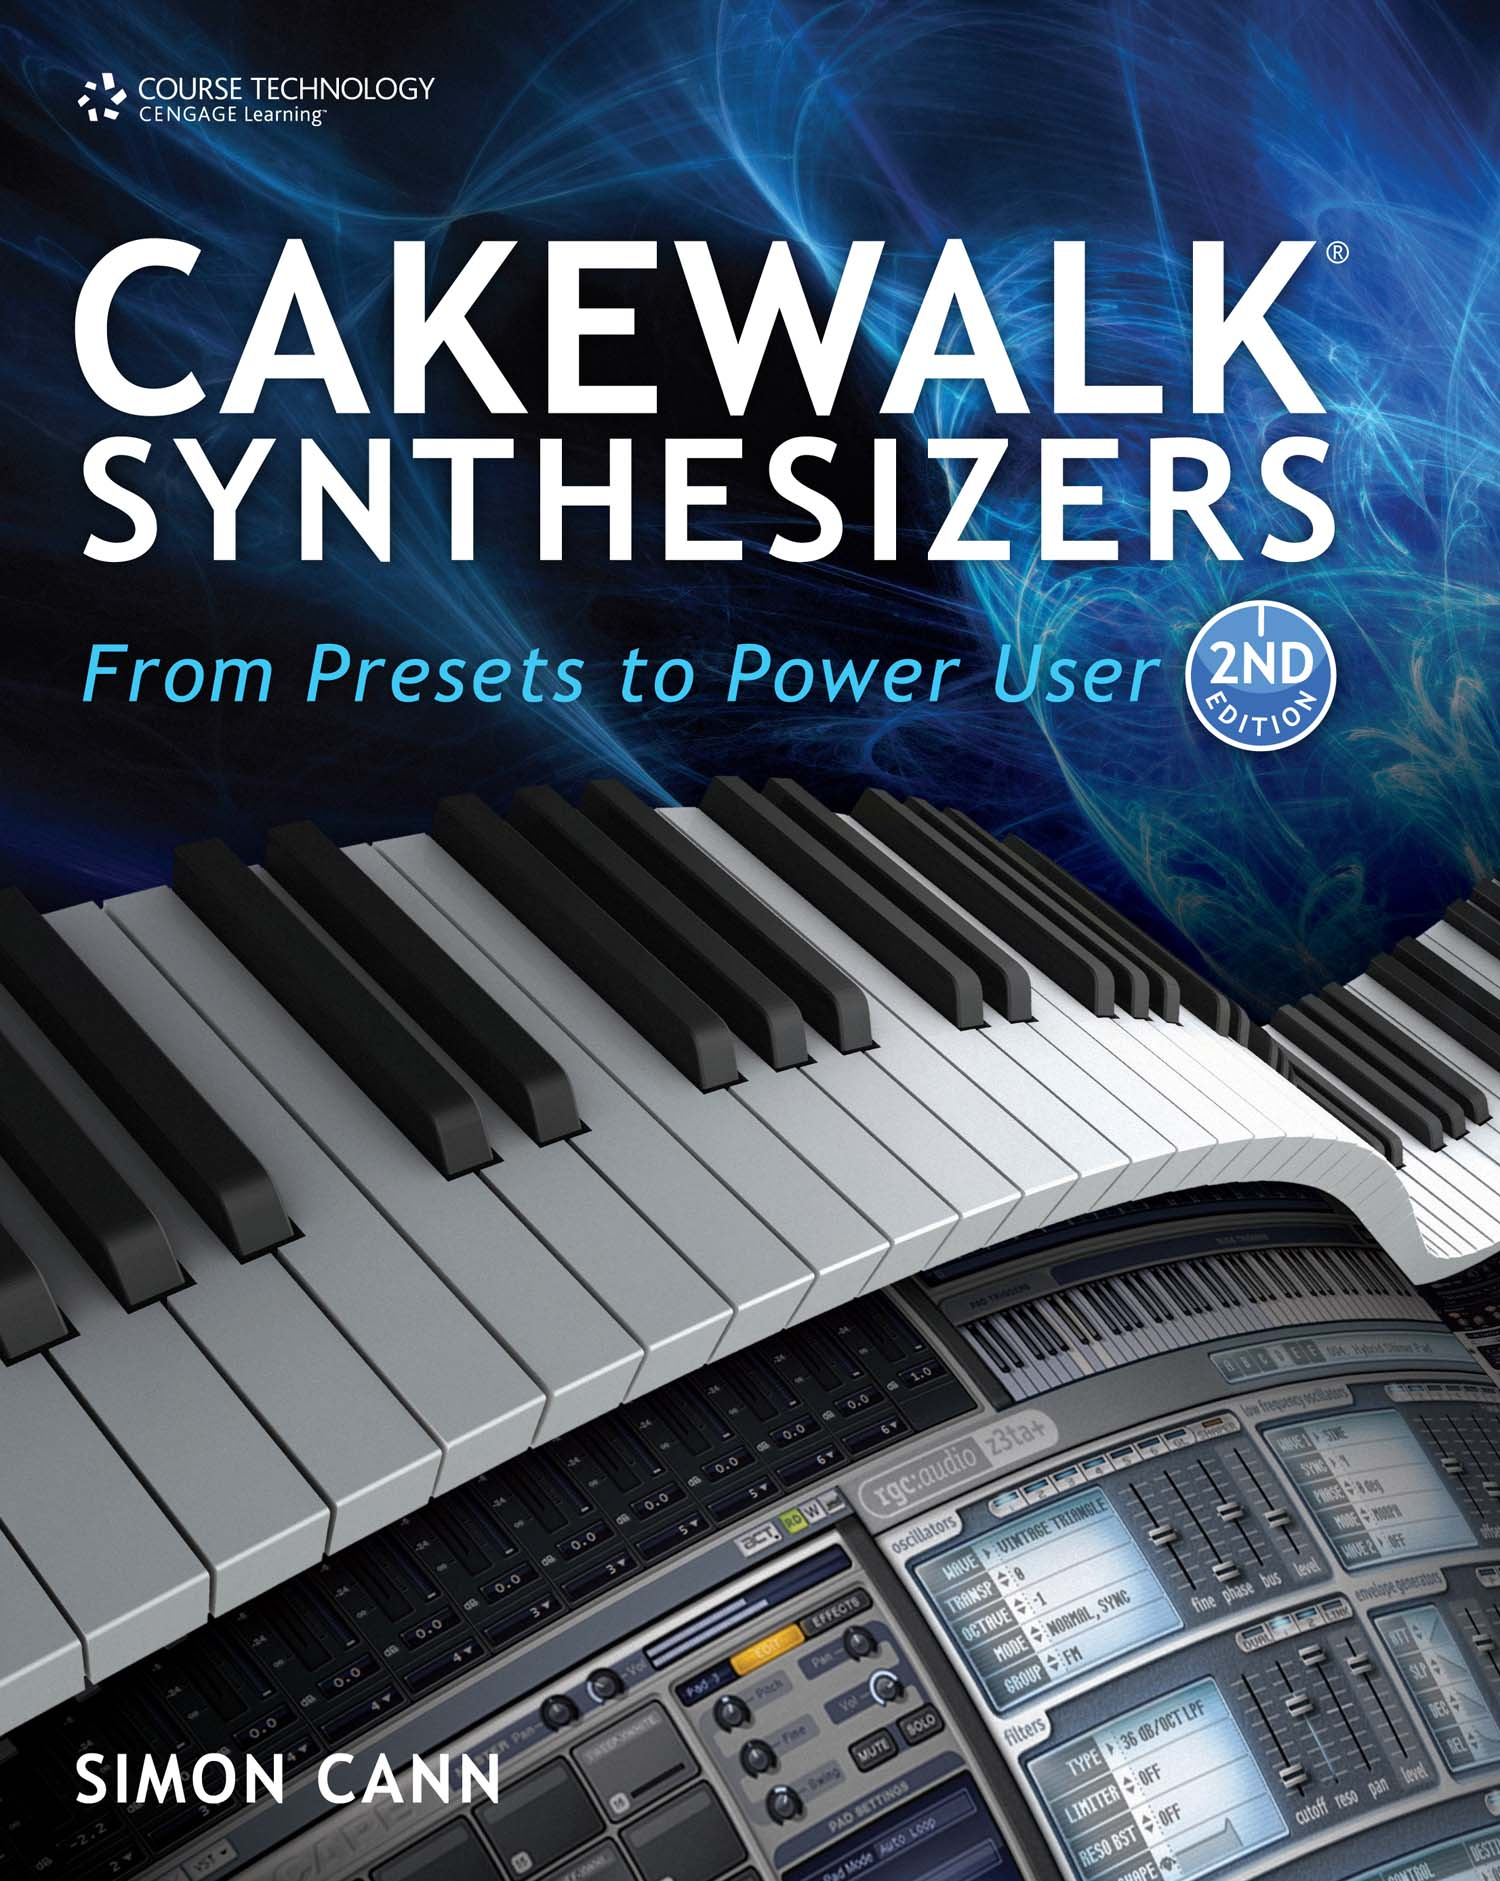 Cakewalk Synthesizers From Presets To Power User By Simon Cann